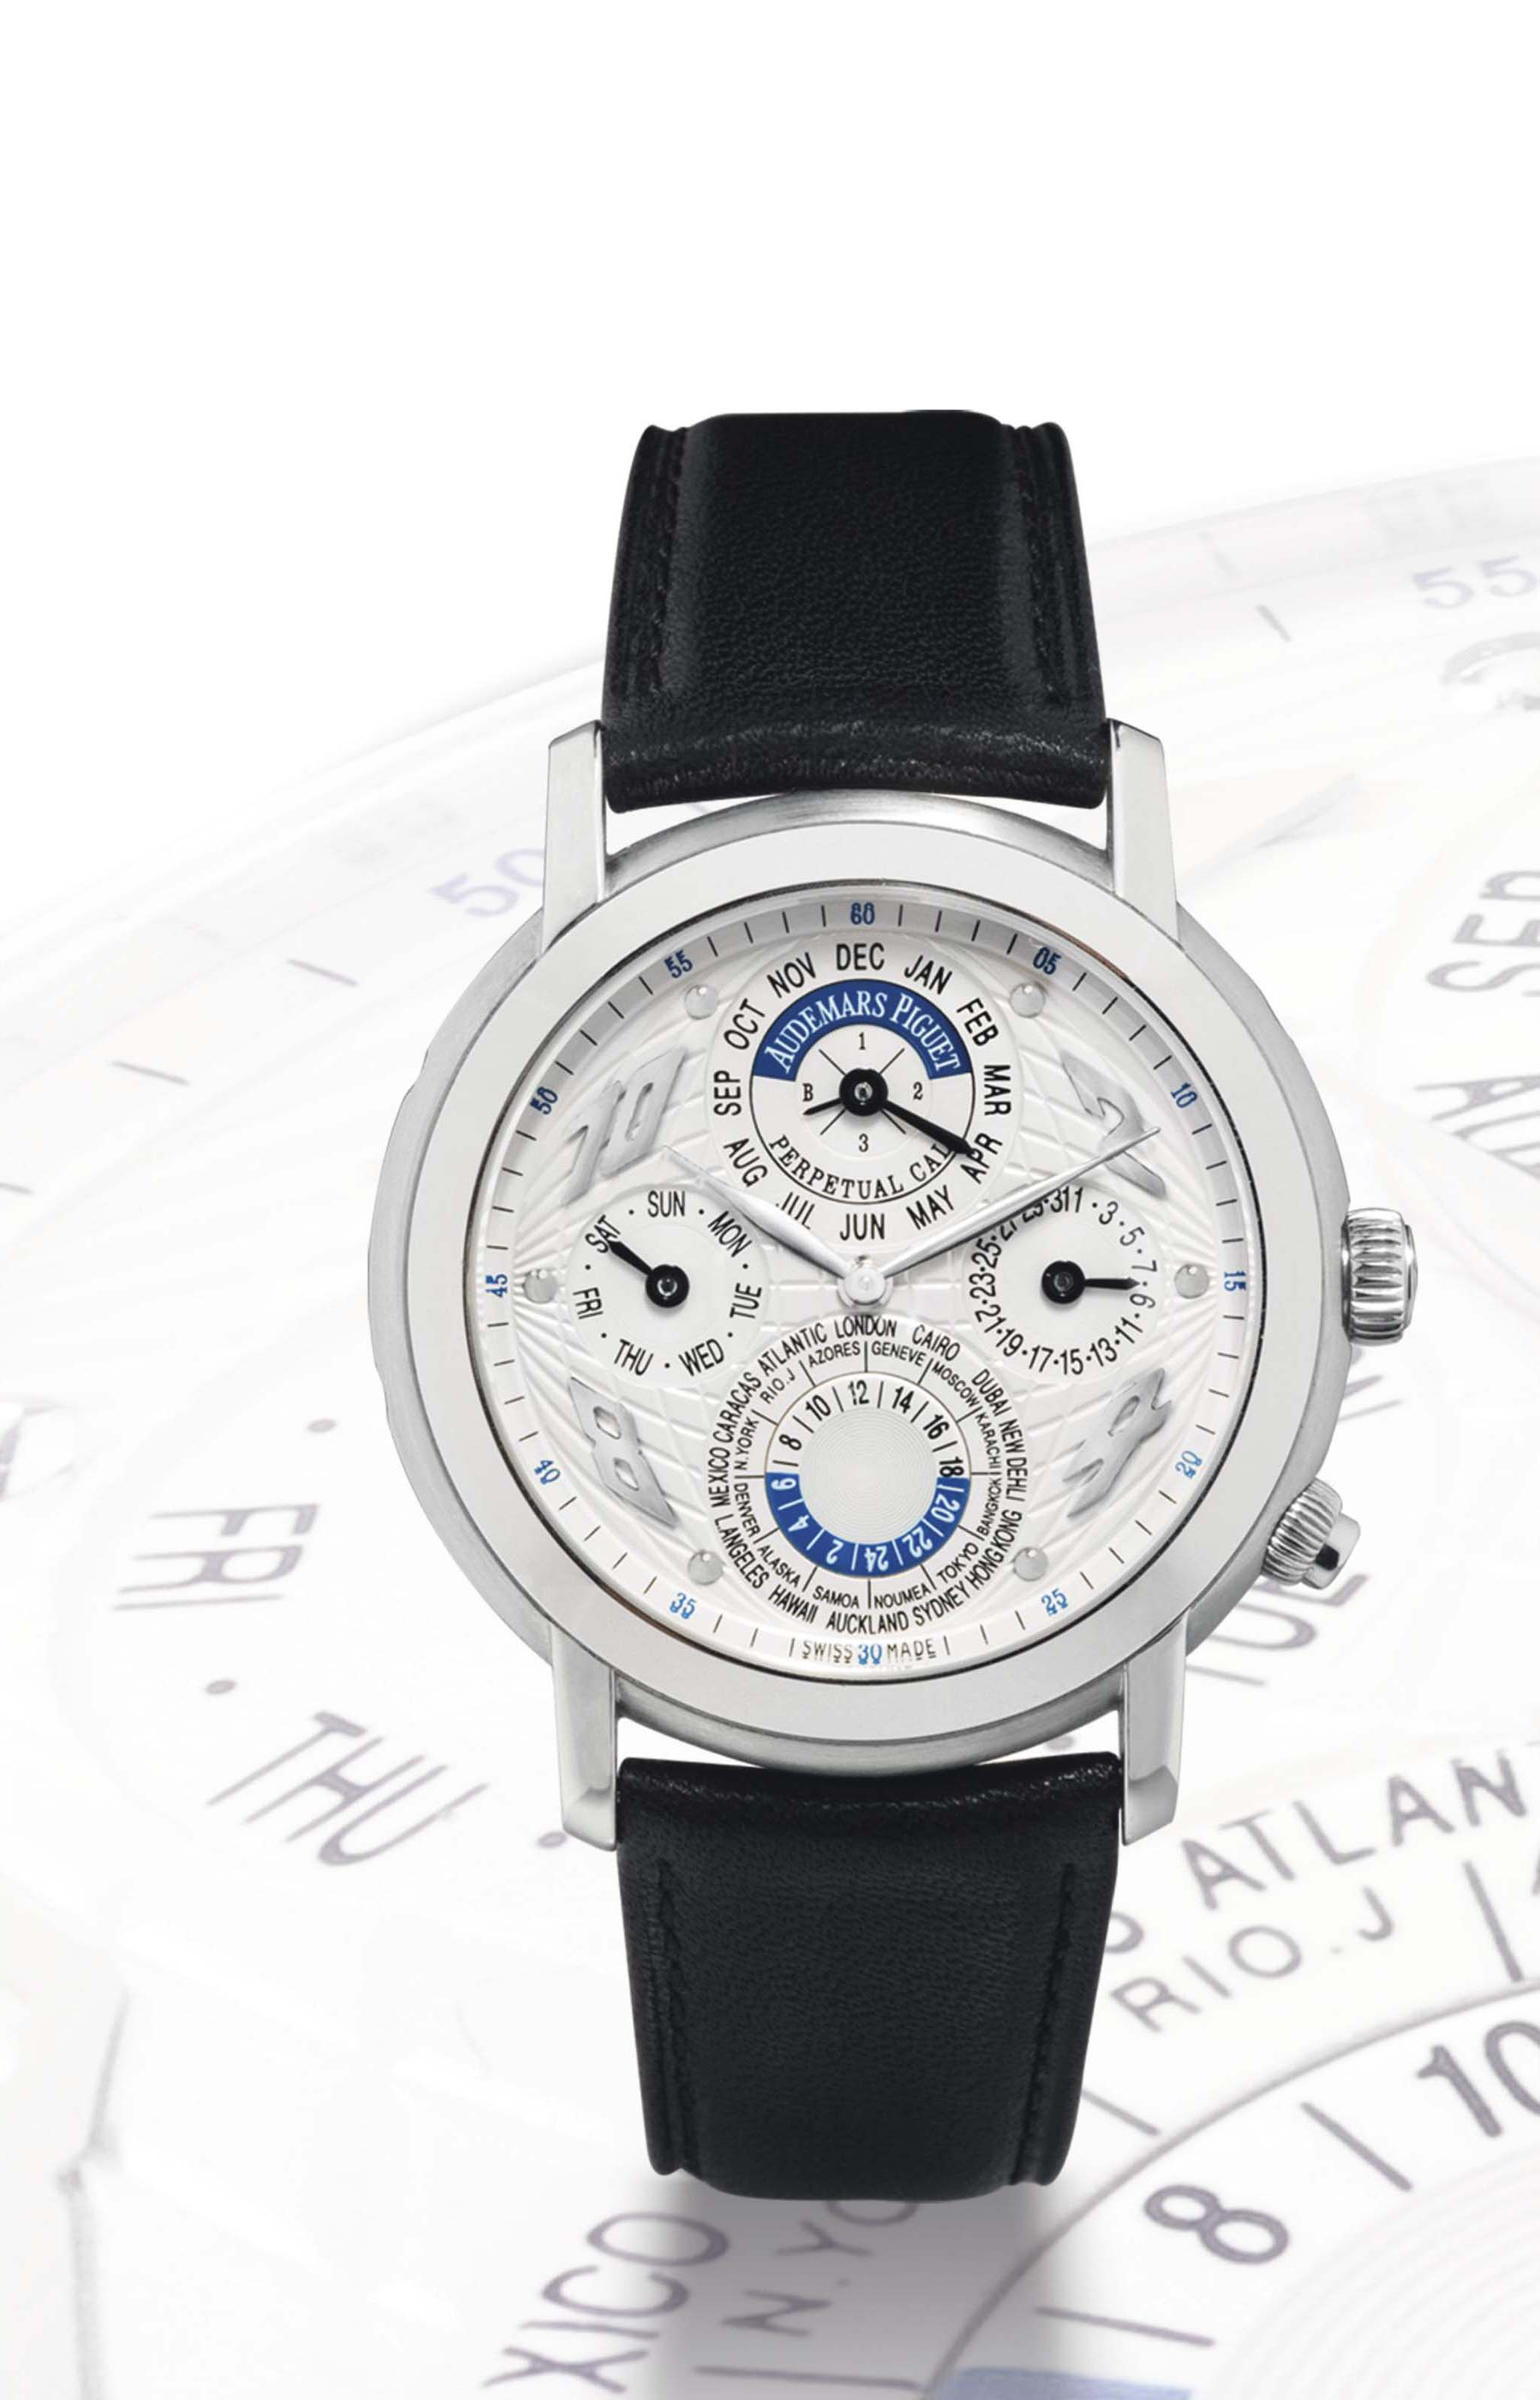 AUDEMARS PIGUET. A VERY FINE AND RARE 18K WHITE GOLD AUTOMATIC PERPETUAL CALENDAR WORLD TIME WRISTWATCH WITH LEAP YEAR INDICATION SIGNED AUDEMARS PIGUET, JULES AUDEMARS, AUTOMATIQUE, QUANTIEME PERPETUEL, METROPOLIS MODEL, MOVEMENT NO.506'135, CASE NO.E61459, CIRCA 2002